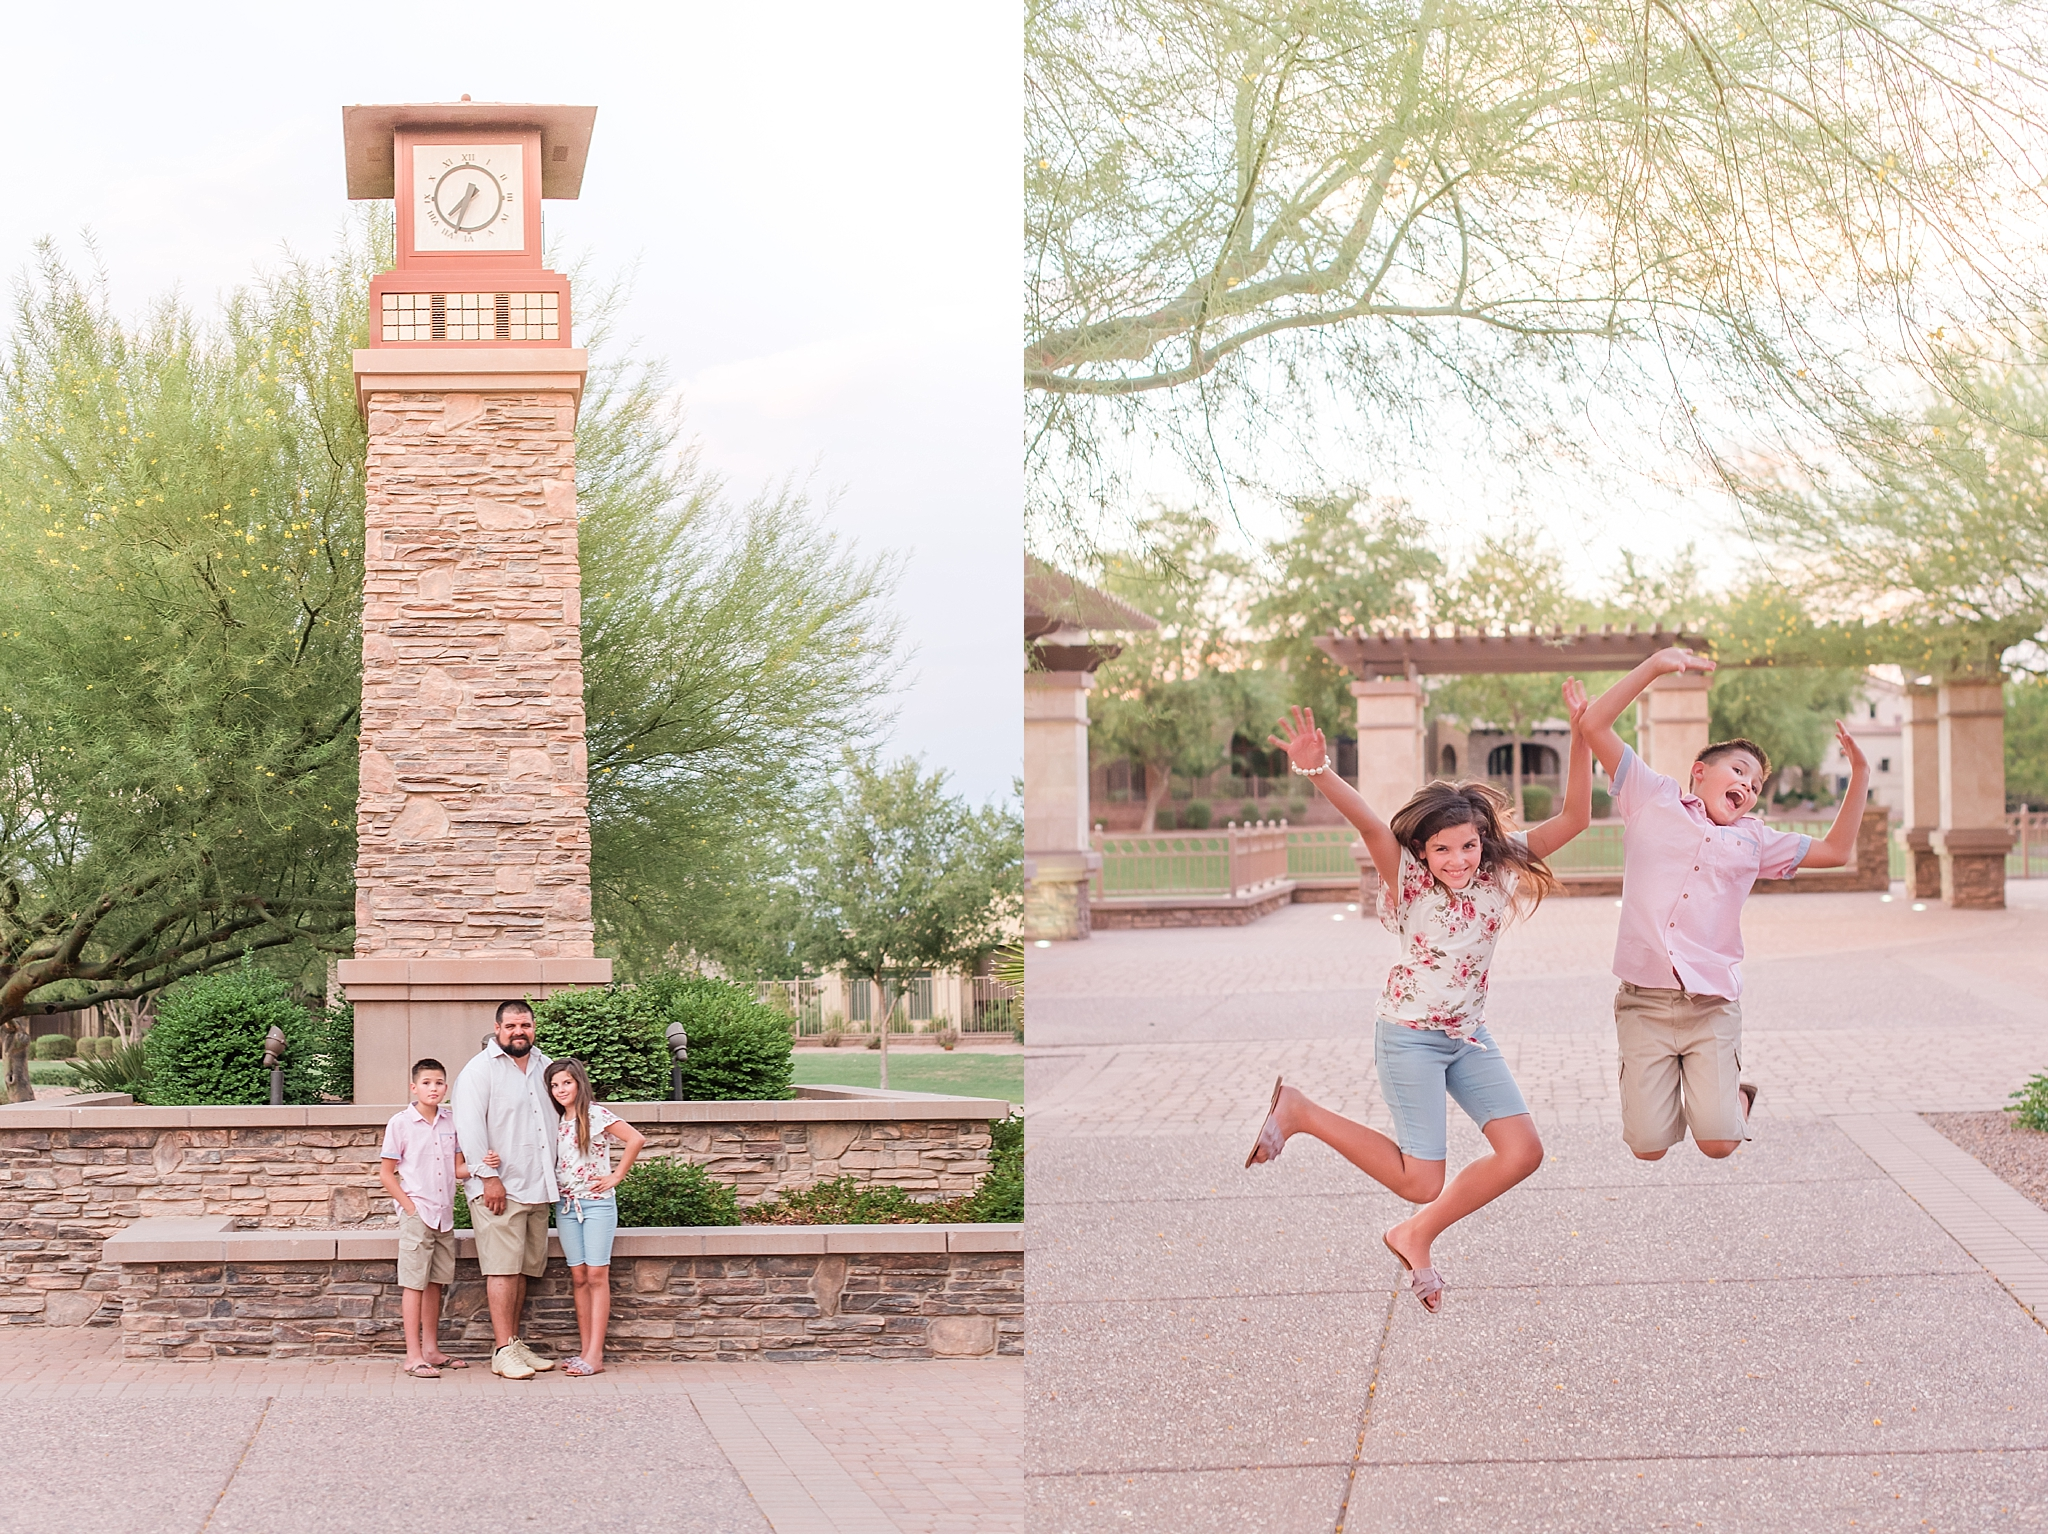 Arce family photo session at Fulton Ranch in Chandler, Arizona. Family photos taken by Jade Min Photography.